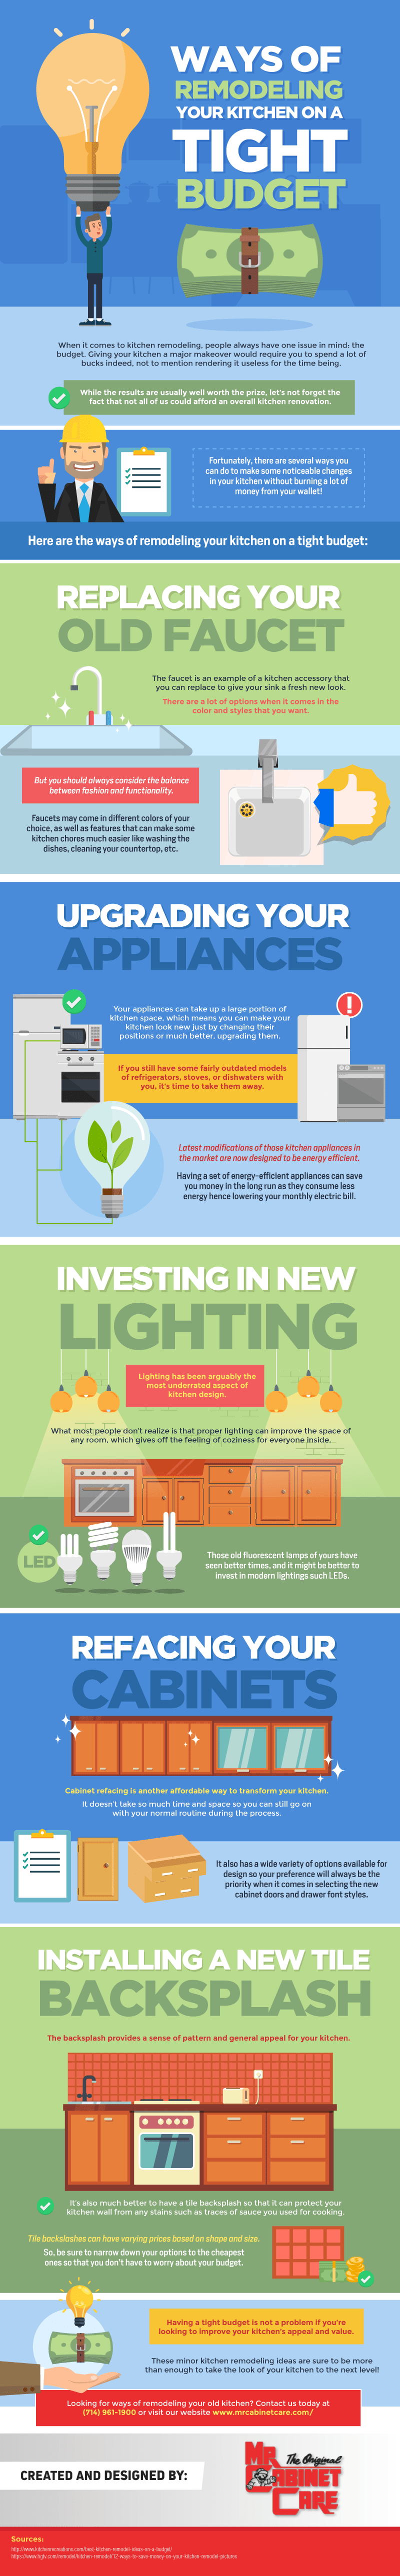 Ways of Remodeling your Kitchen on a Tight Budget - Infographic